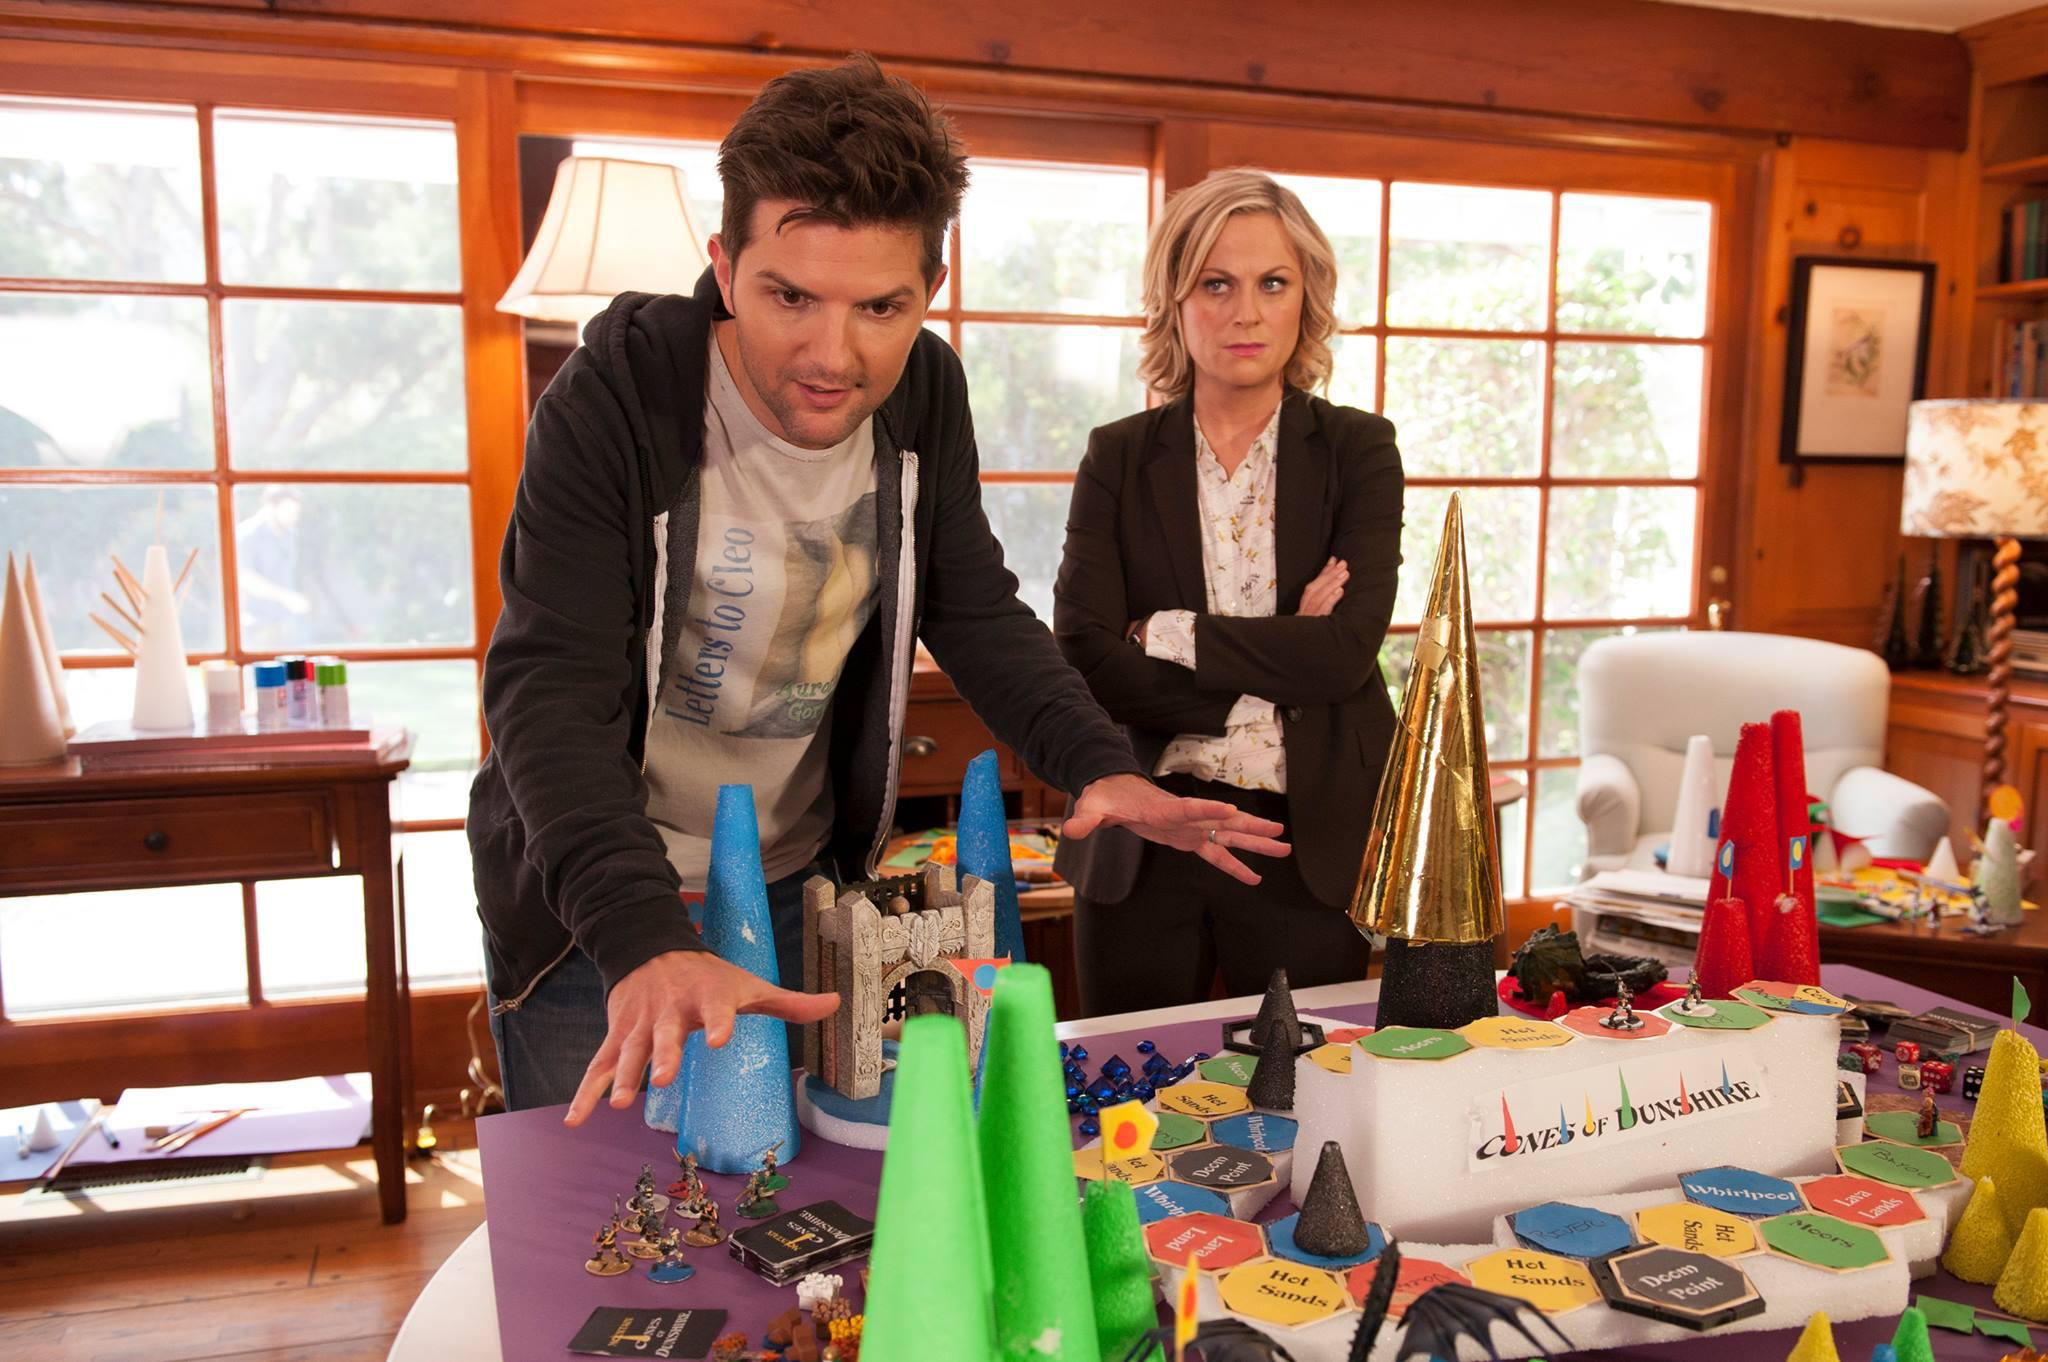 Parks And Rec 39 S 39 Cones Of Dunshire 39 Board Game Kickstarted